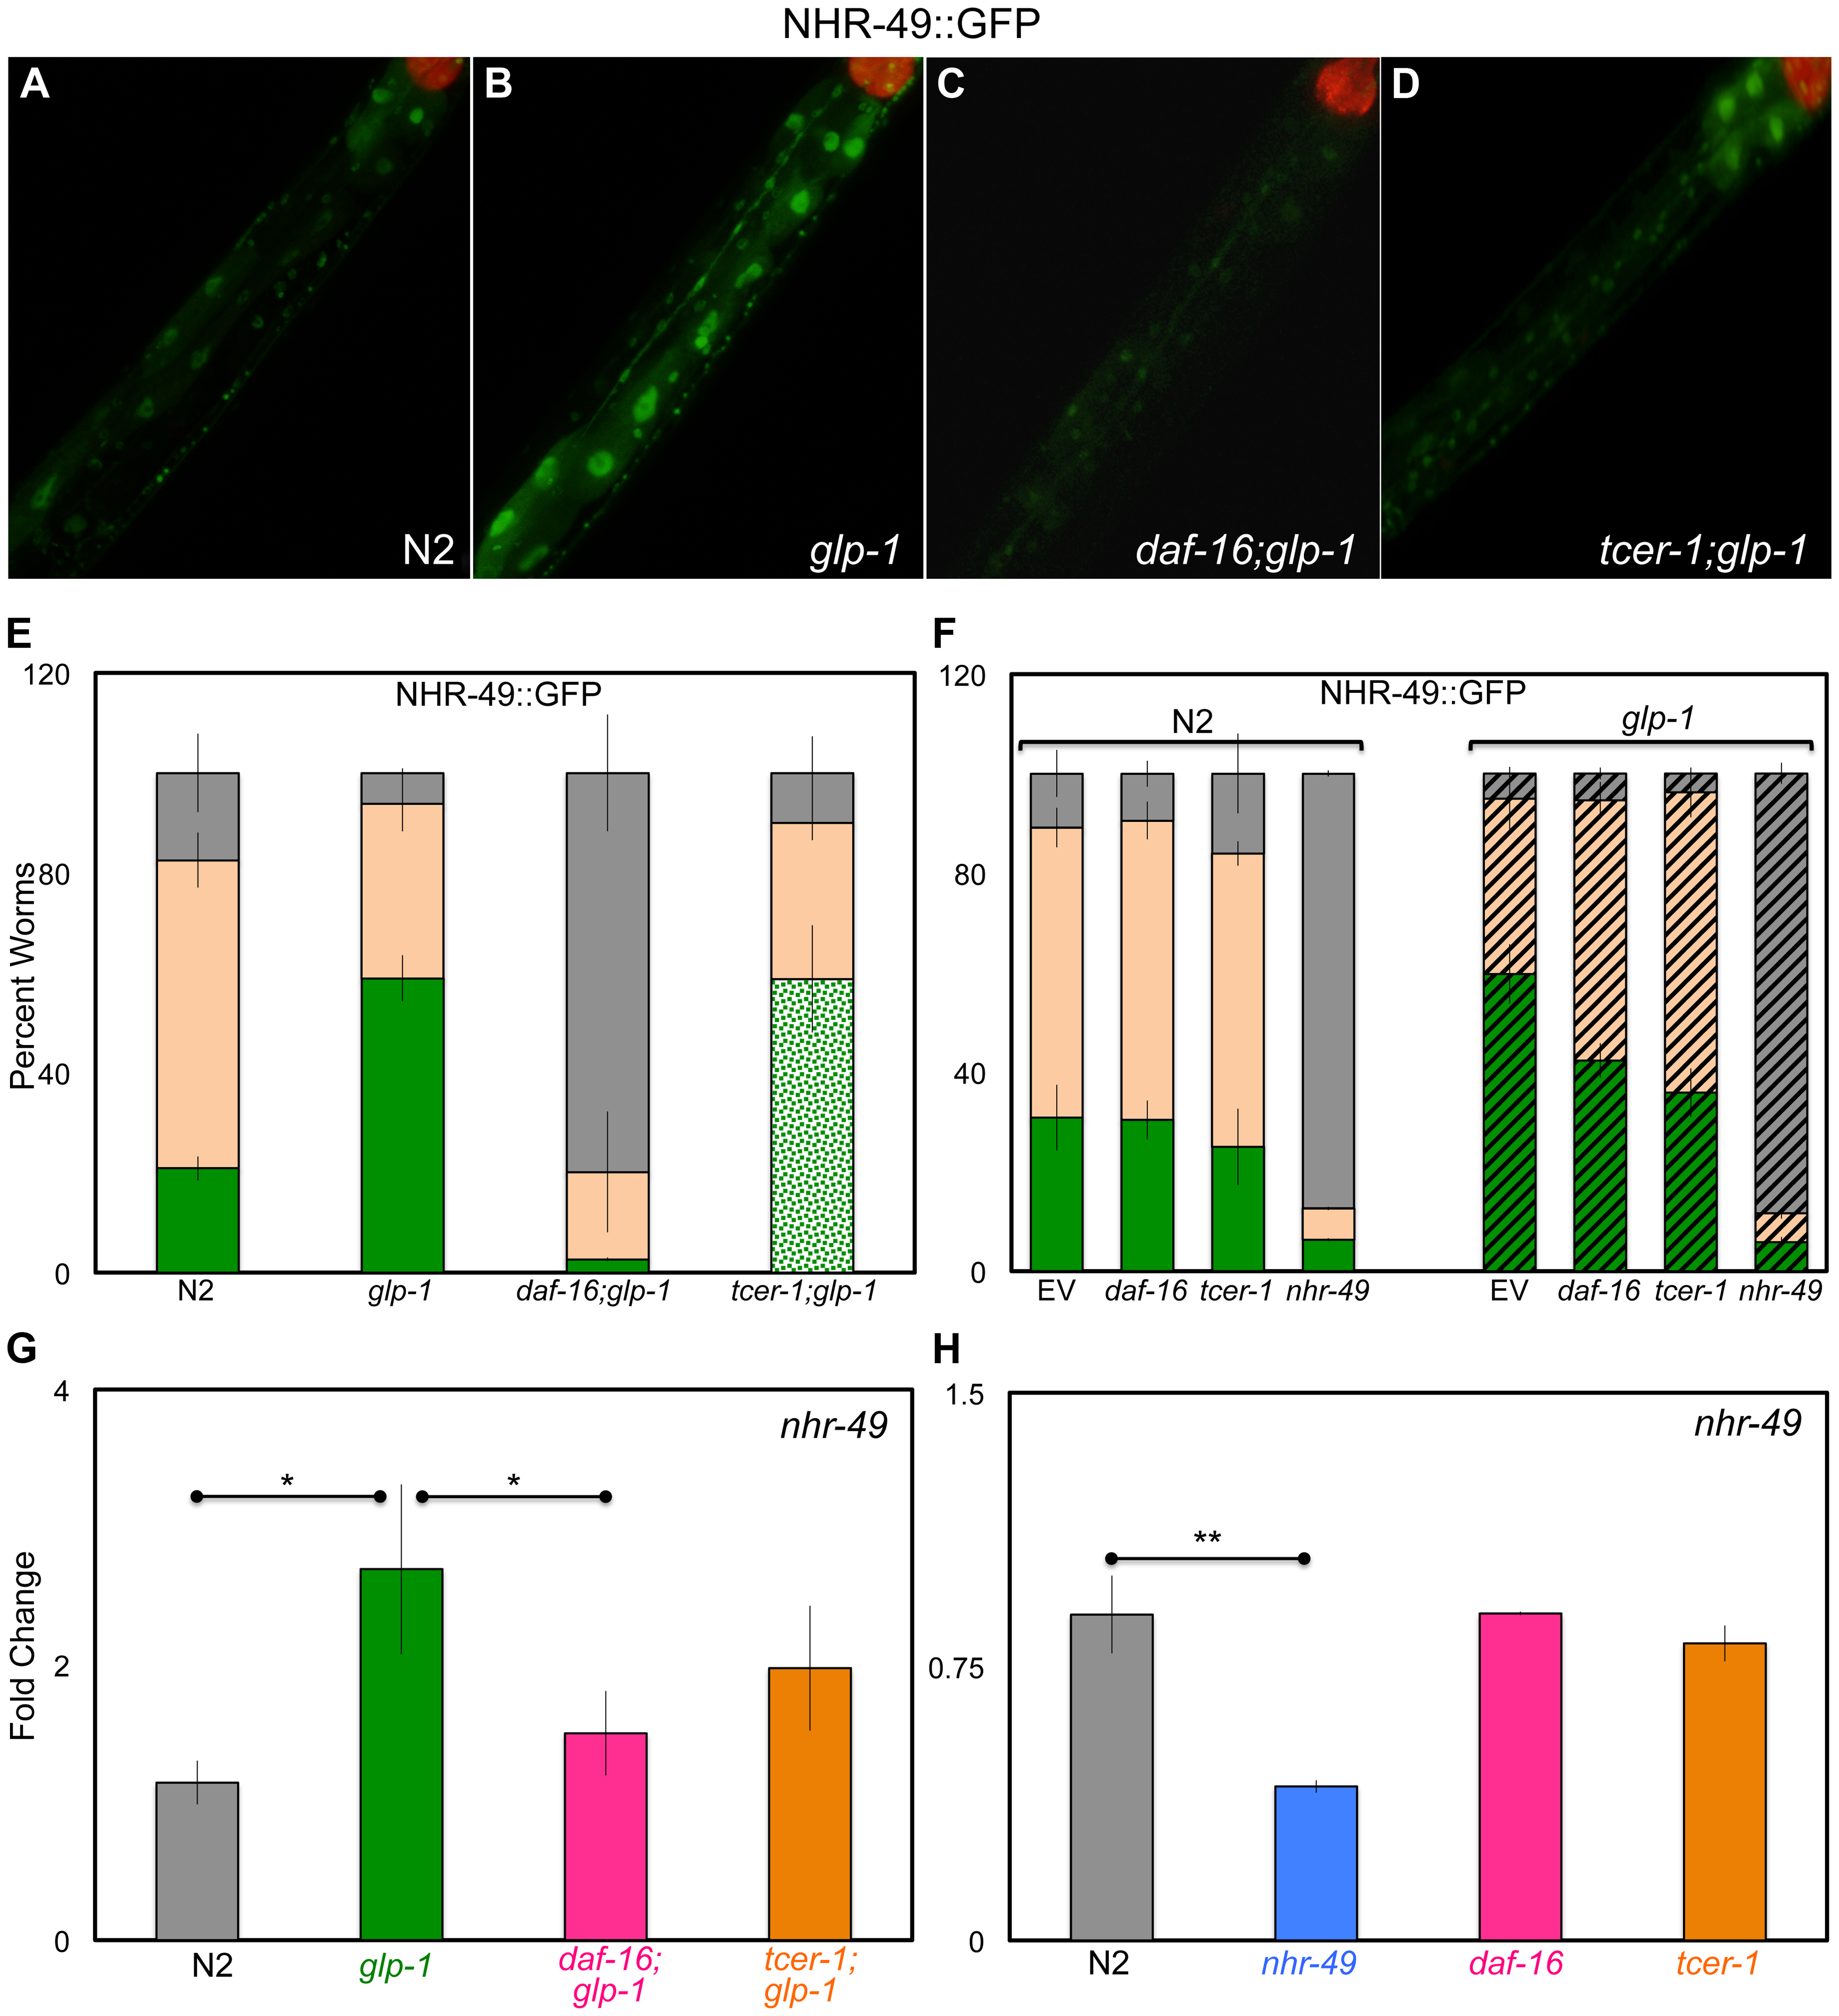 Germline removal causes increased expression of NHR-49 under regulation of DAF-16 and TCER-1.